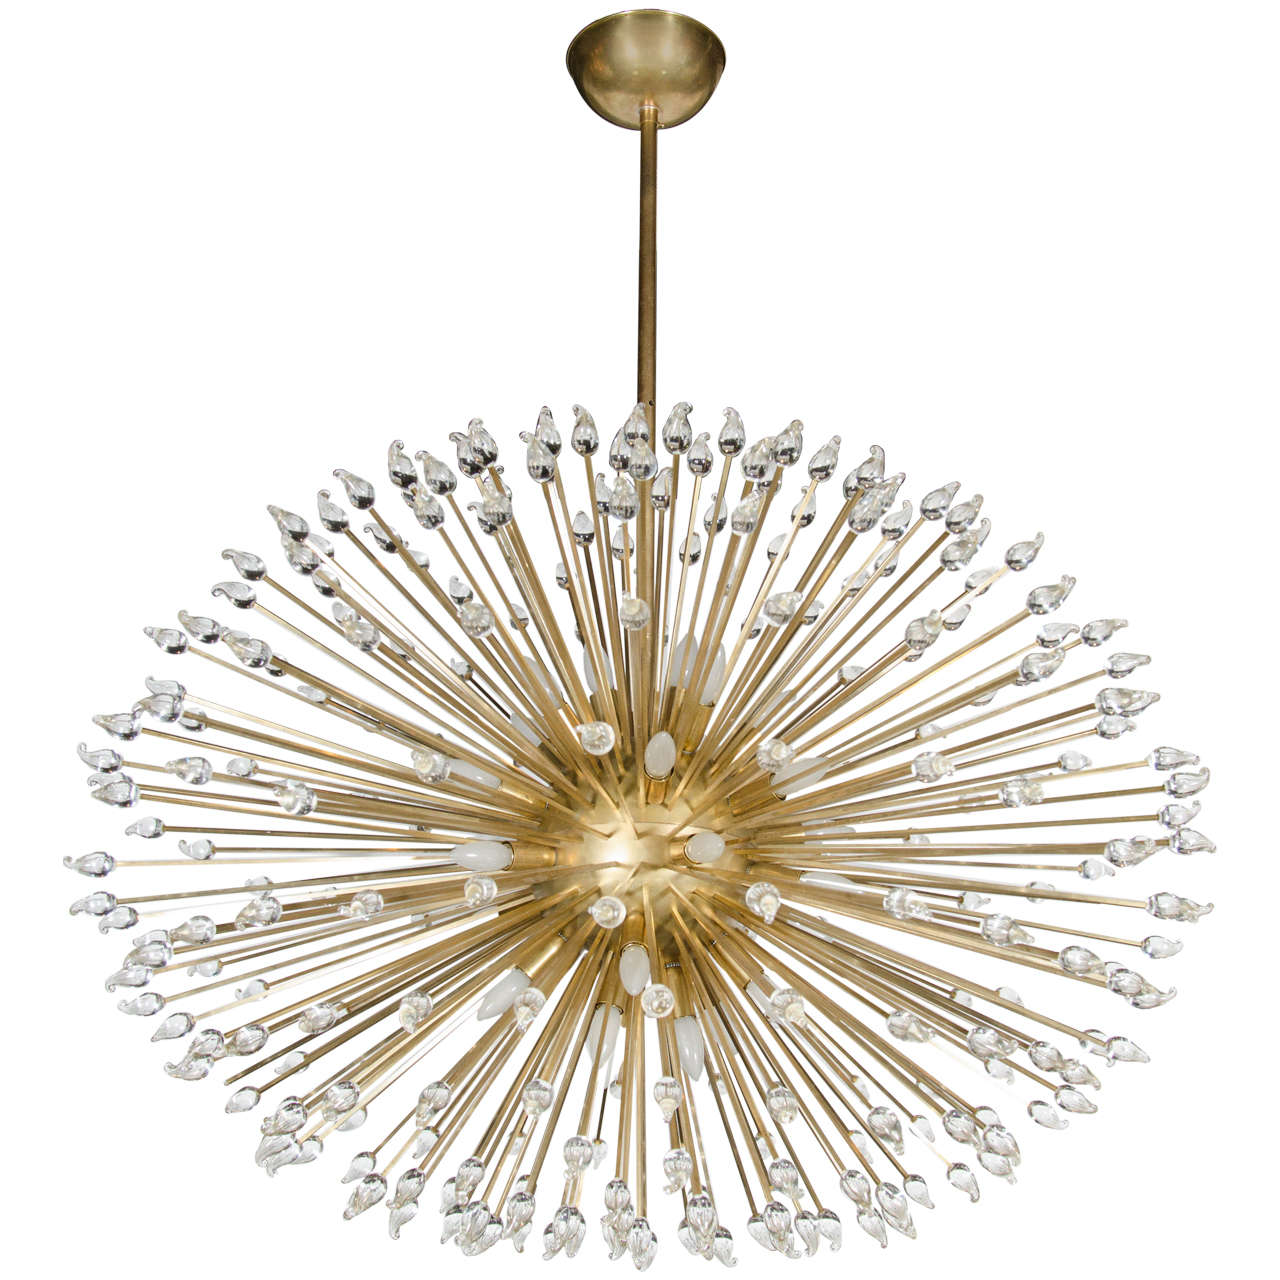 mid century modern sputnik chandelier with handblown murano glass teardrops at 1stdibs. Black Bedroom Furniture Sets. Home Design Ideas